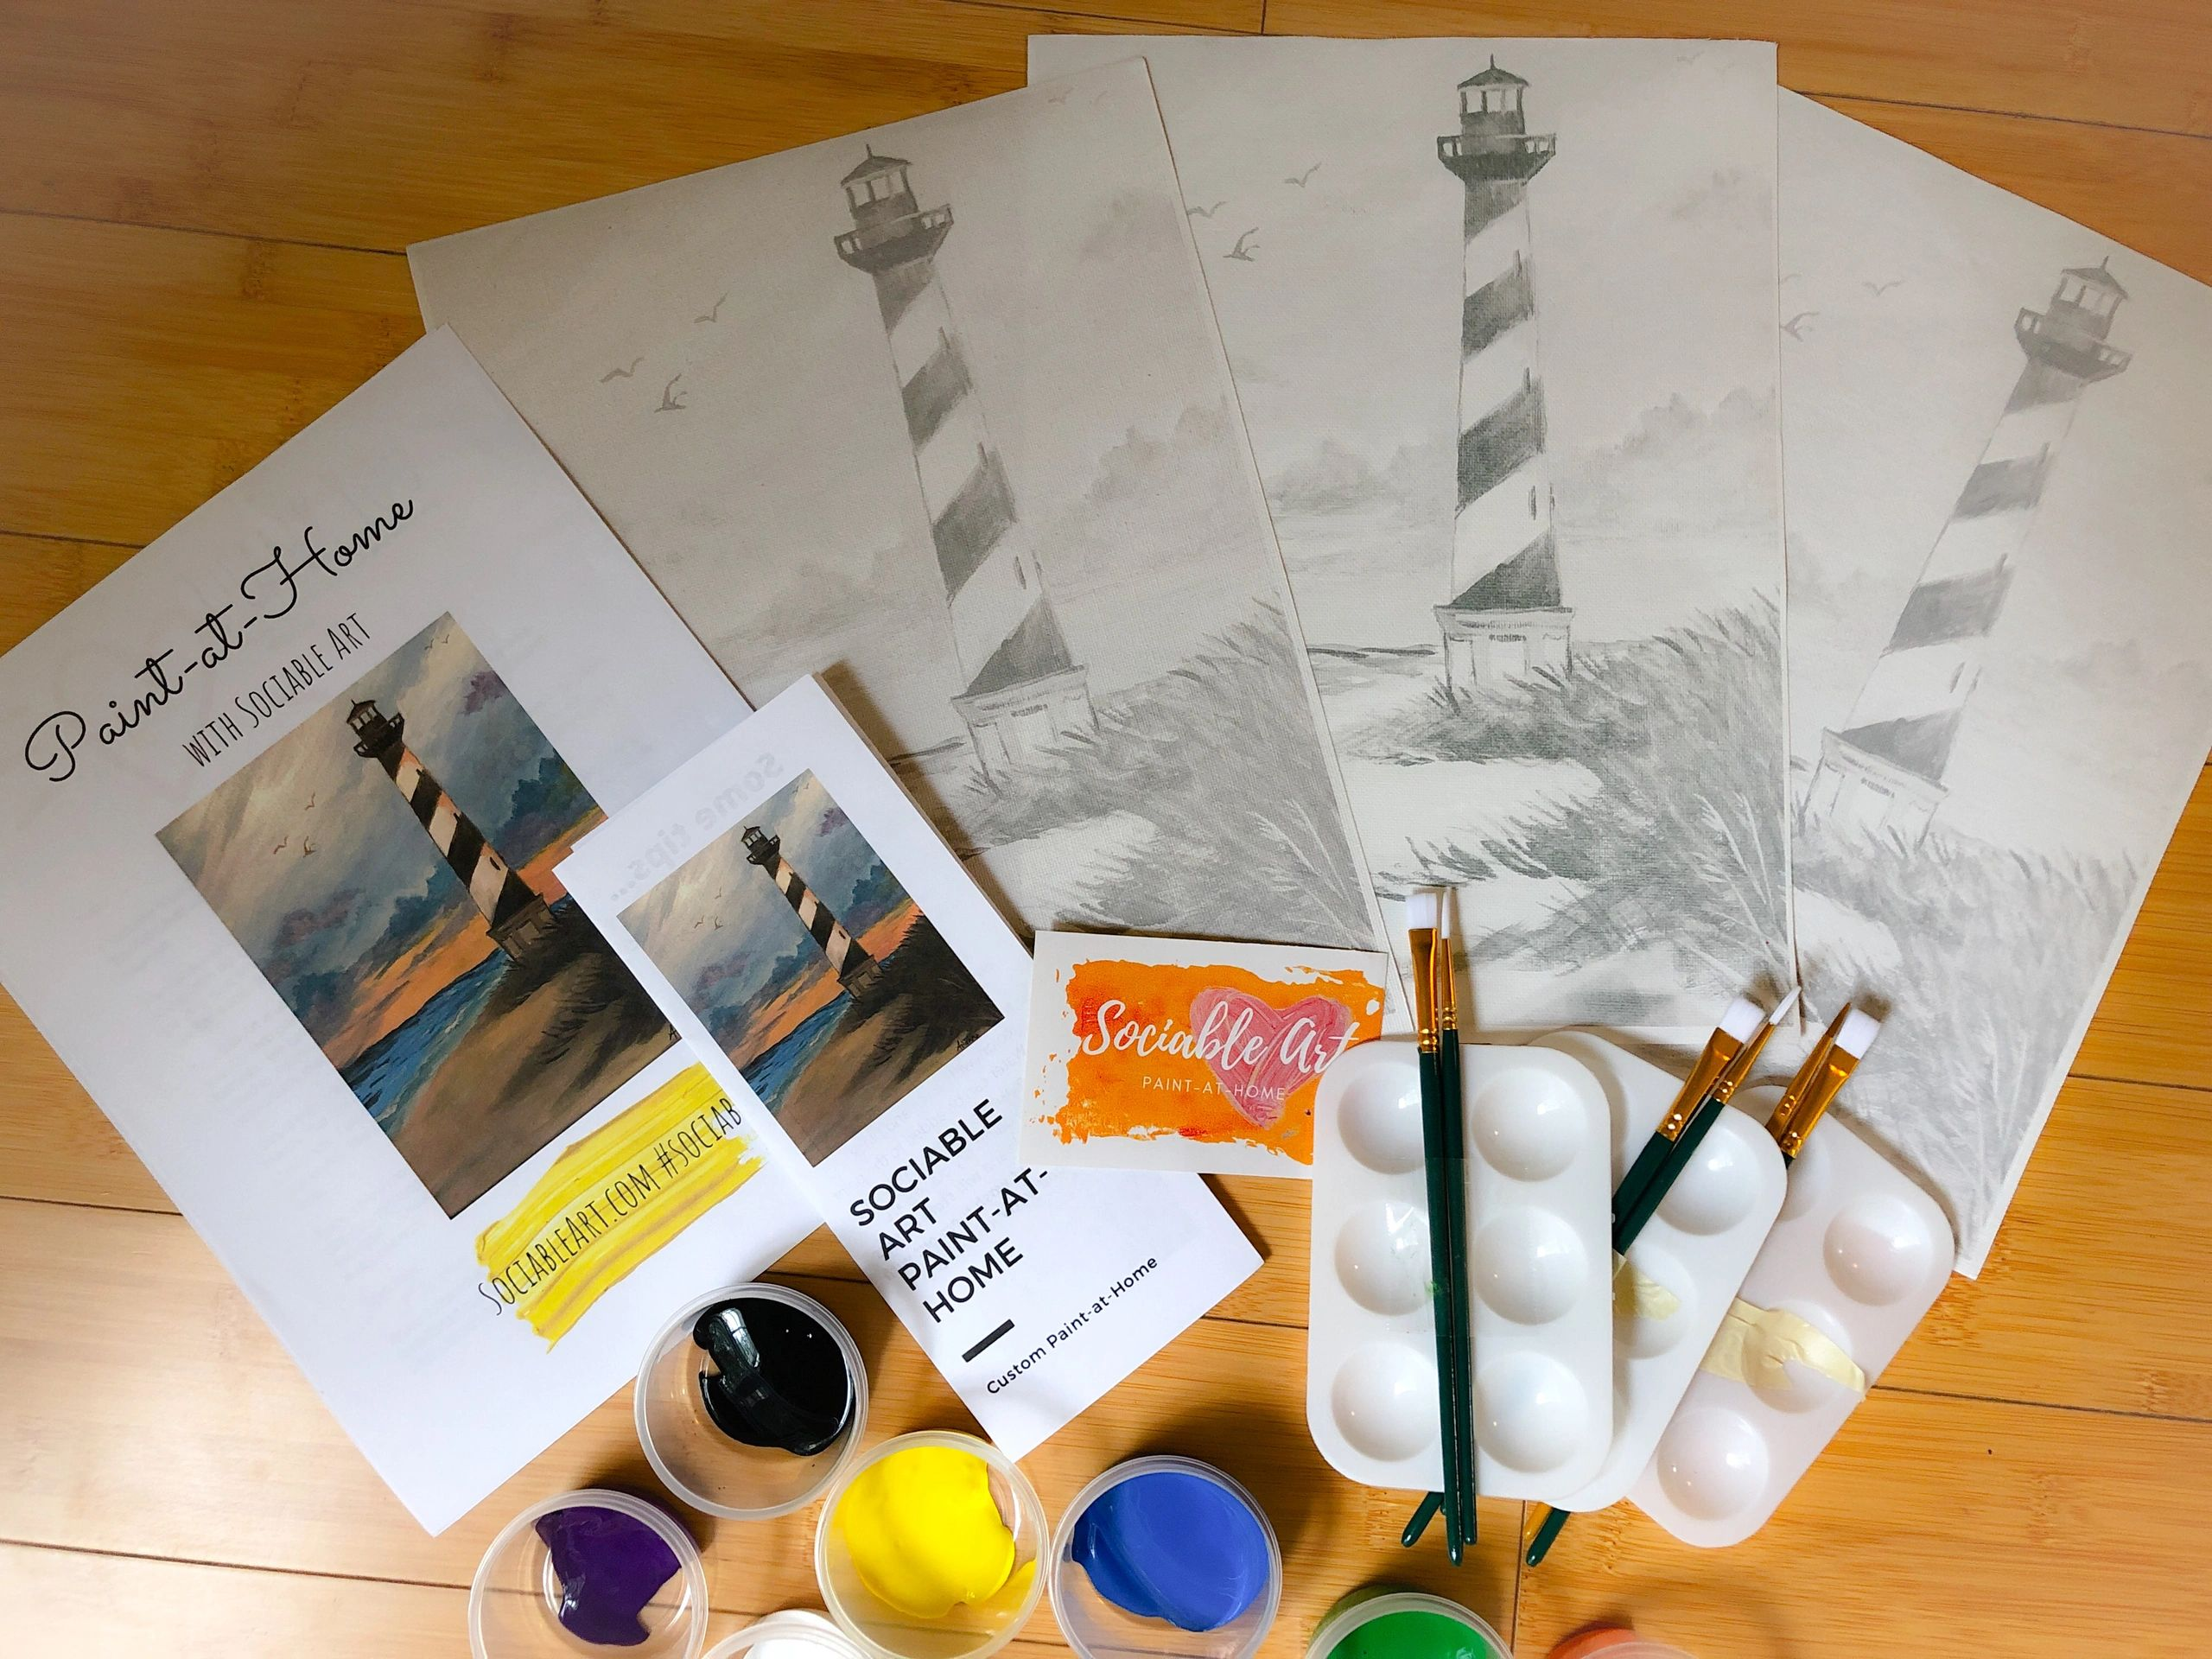 Sociable Art Paint Kits And Paint Events For Families And Groups